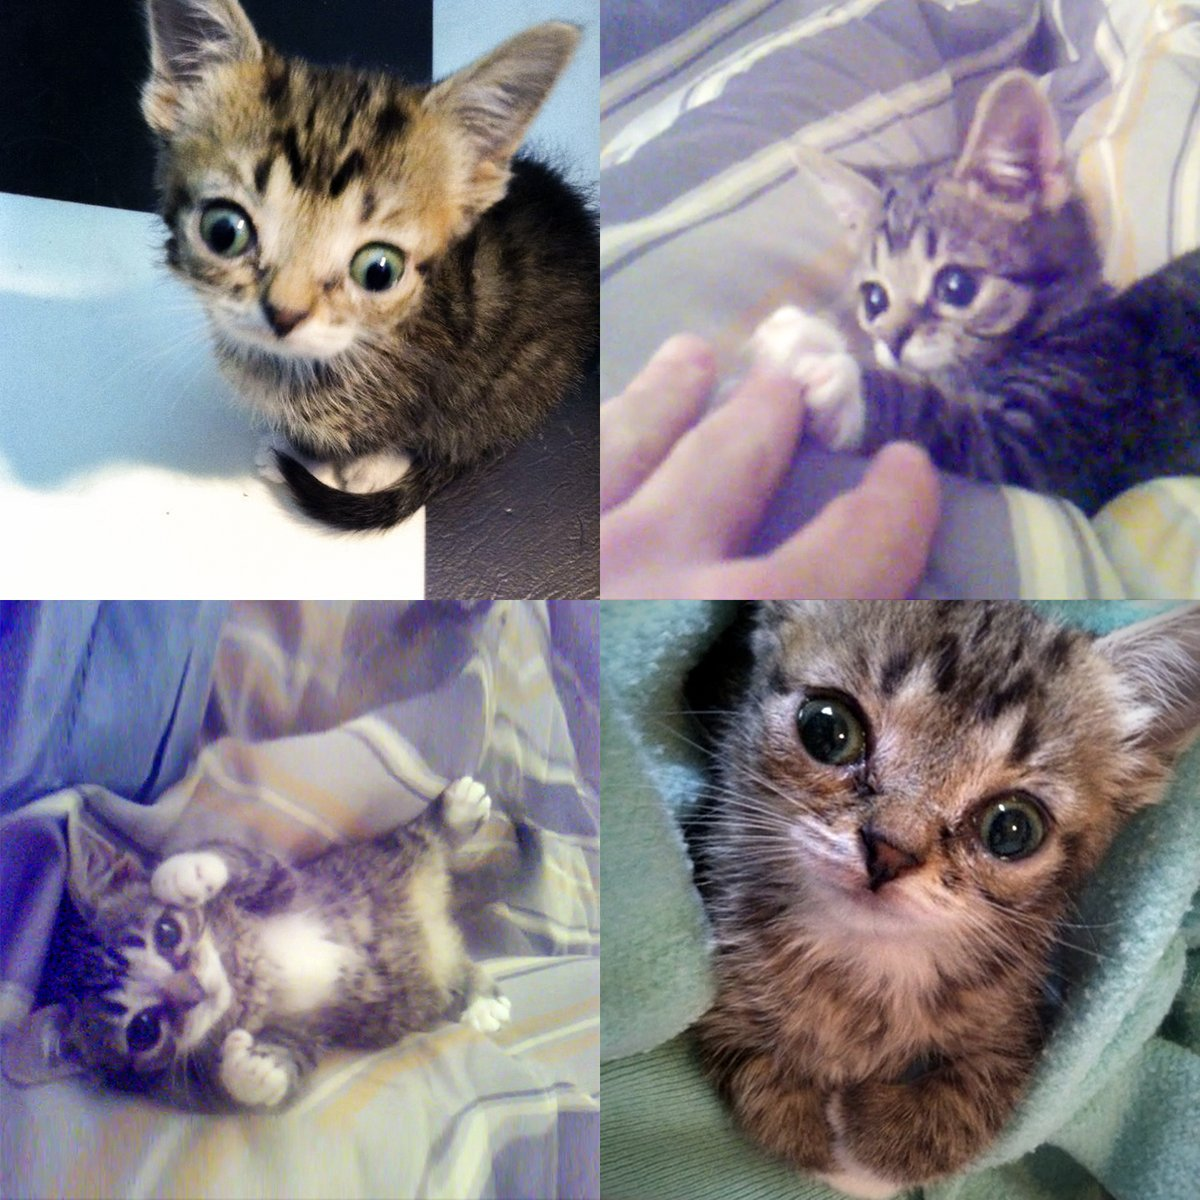 Fridays were always about BABY BUB, so lets celebrate with these amazing Lil Lil BUB photos. #lillilbub #bestjobbub #bubforever